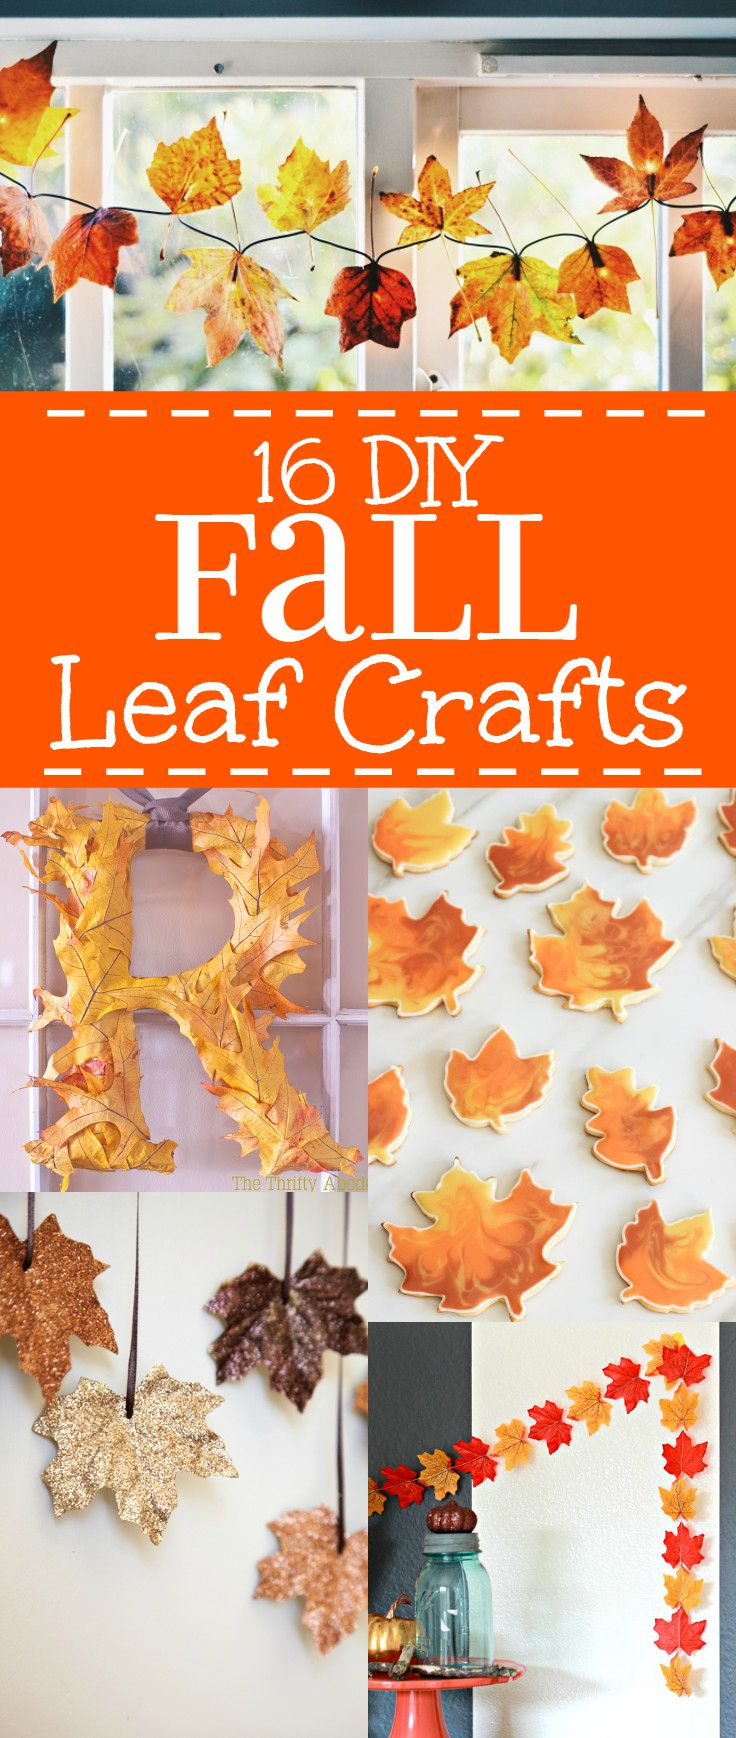 Crafts diy archives page 3 of 6 the gracious wife for Homemade fall decorations for home